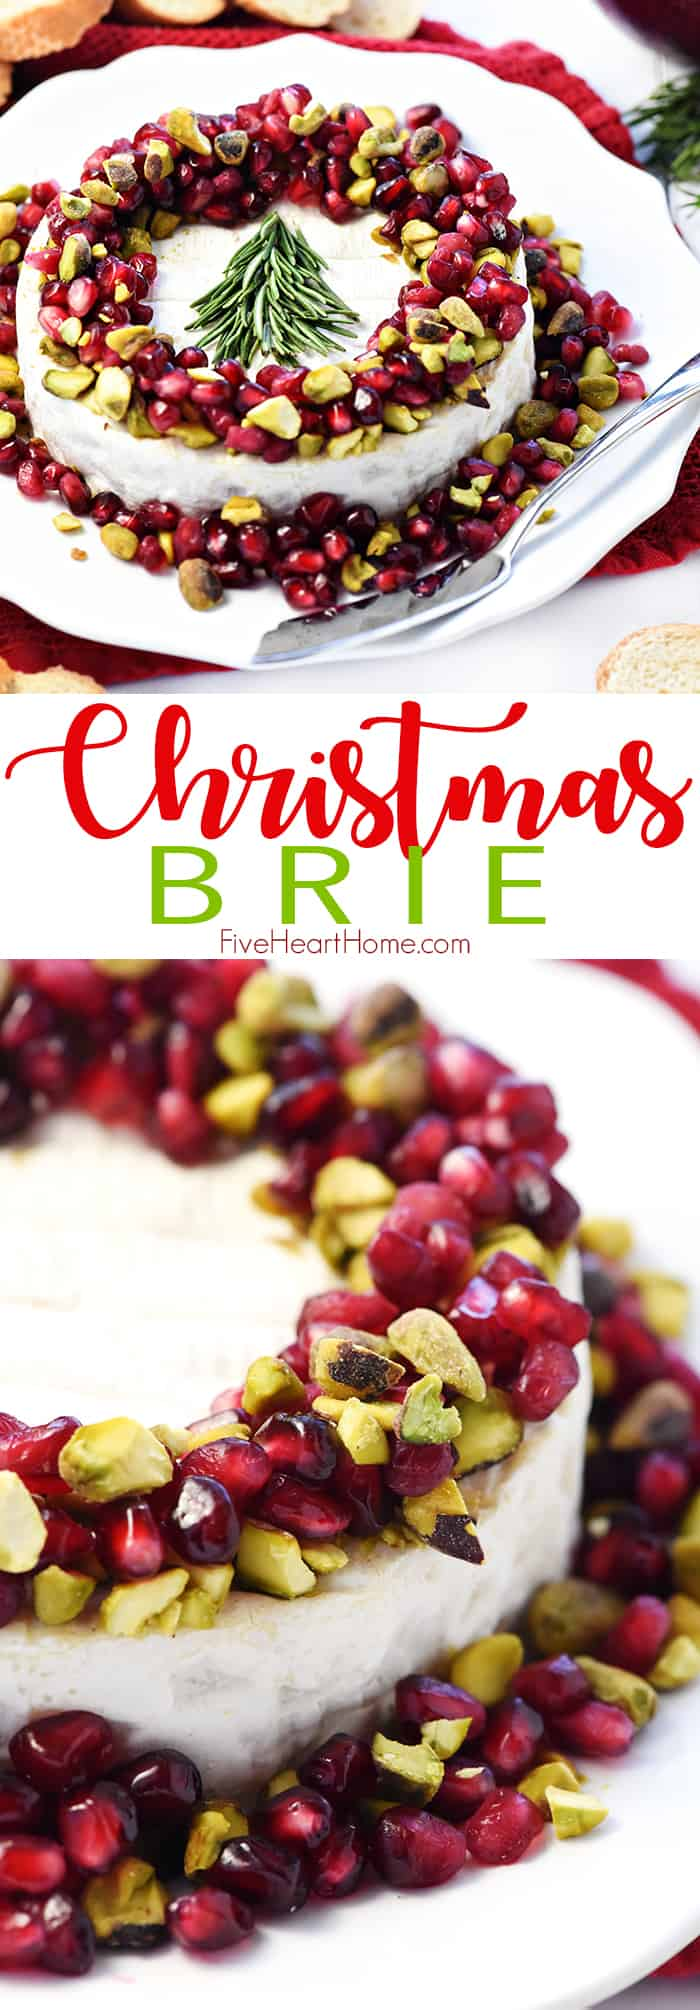 Christmas Brie Collage with Text Overlay